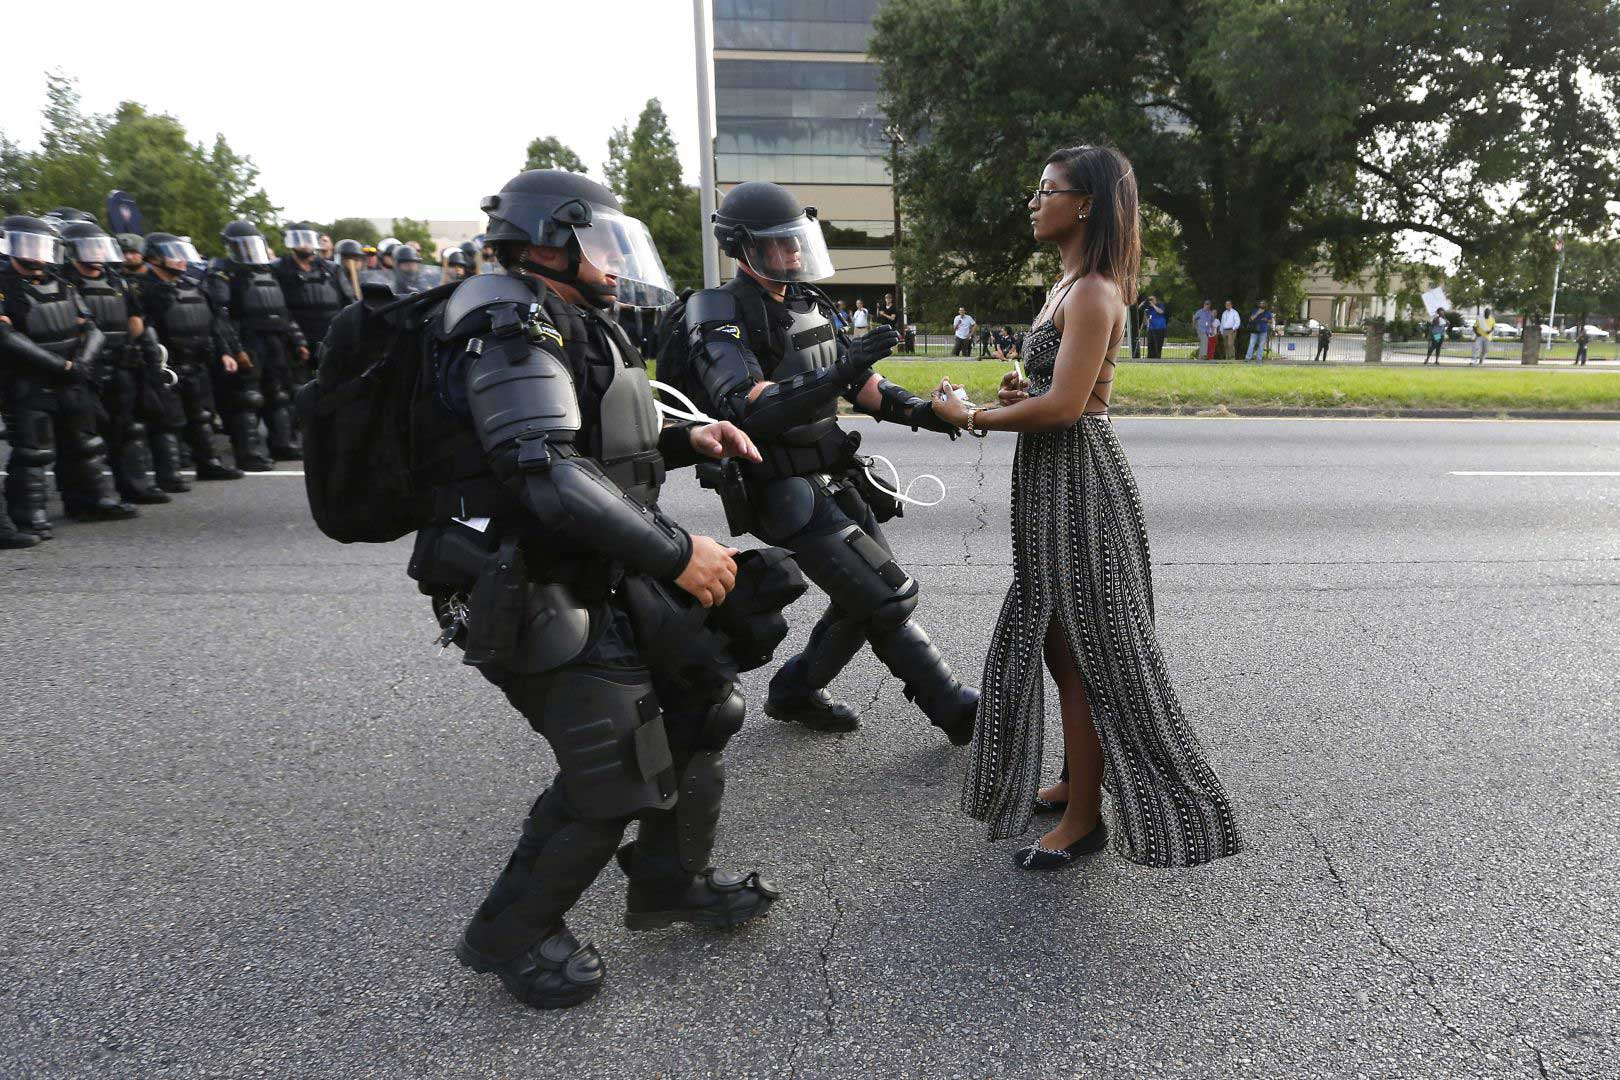 Lone activist Ieshia Evans stands her ground while offering her hands for arrest as she is charged by riot police during a protest against police brutality outside the Baton Rouge Police Department in Louisiana, USA, on July 9, 2016.